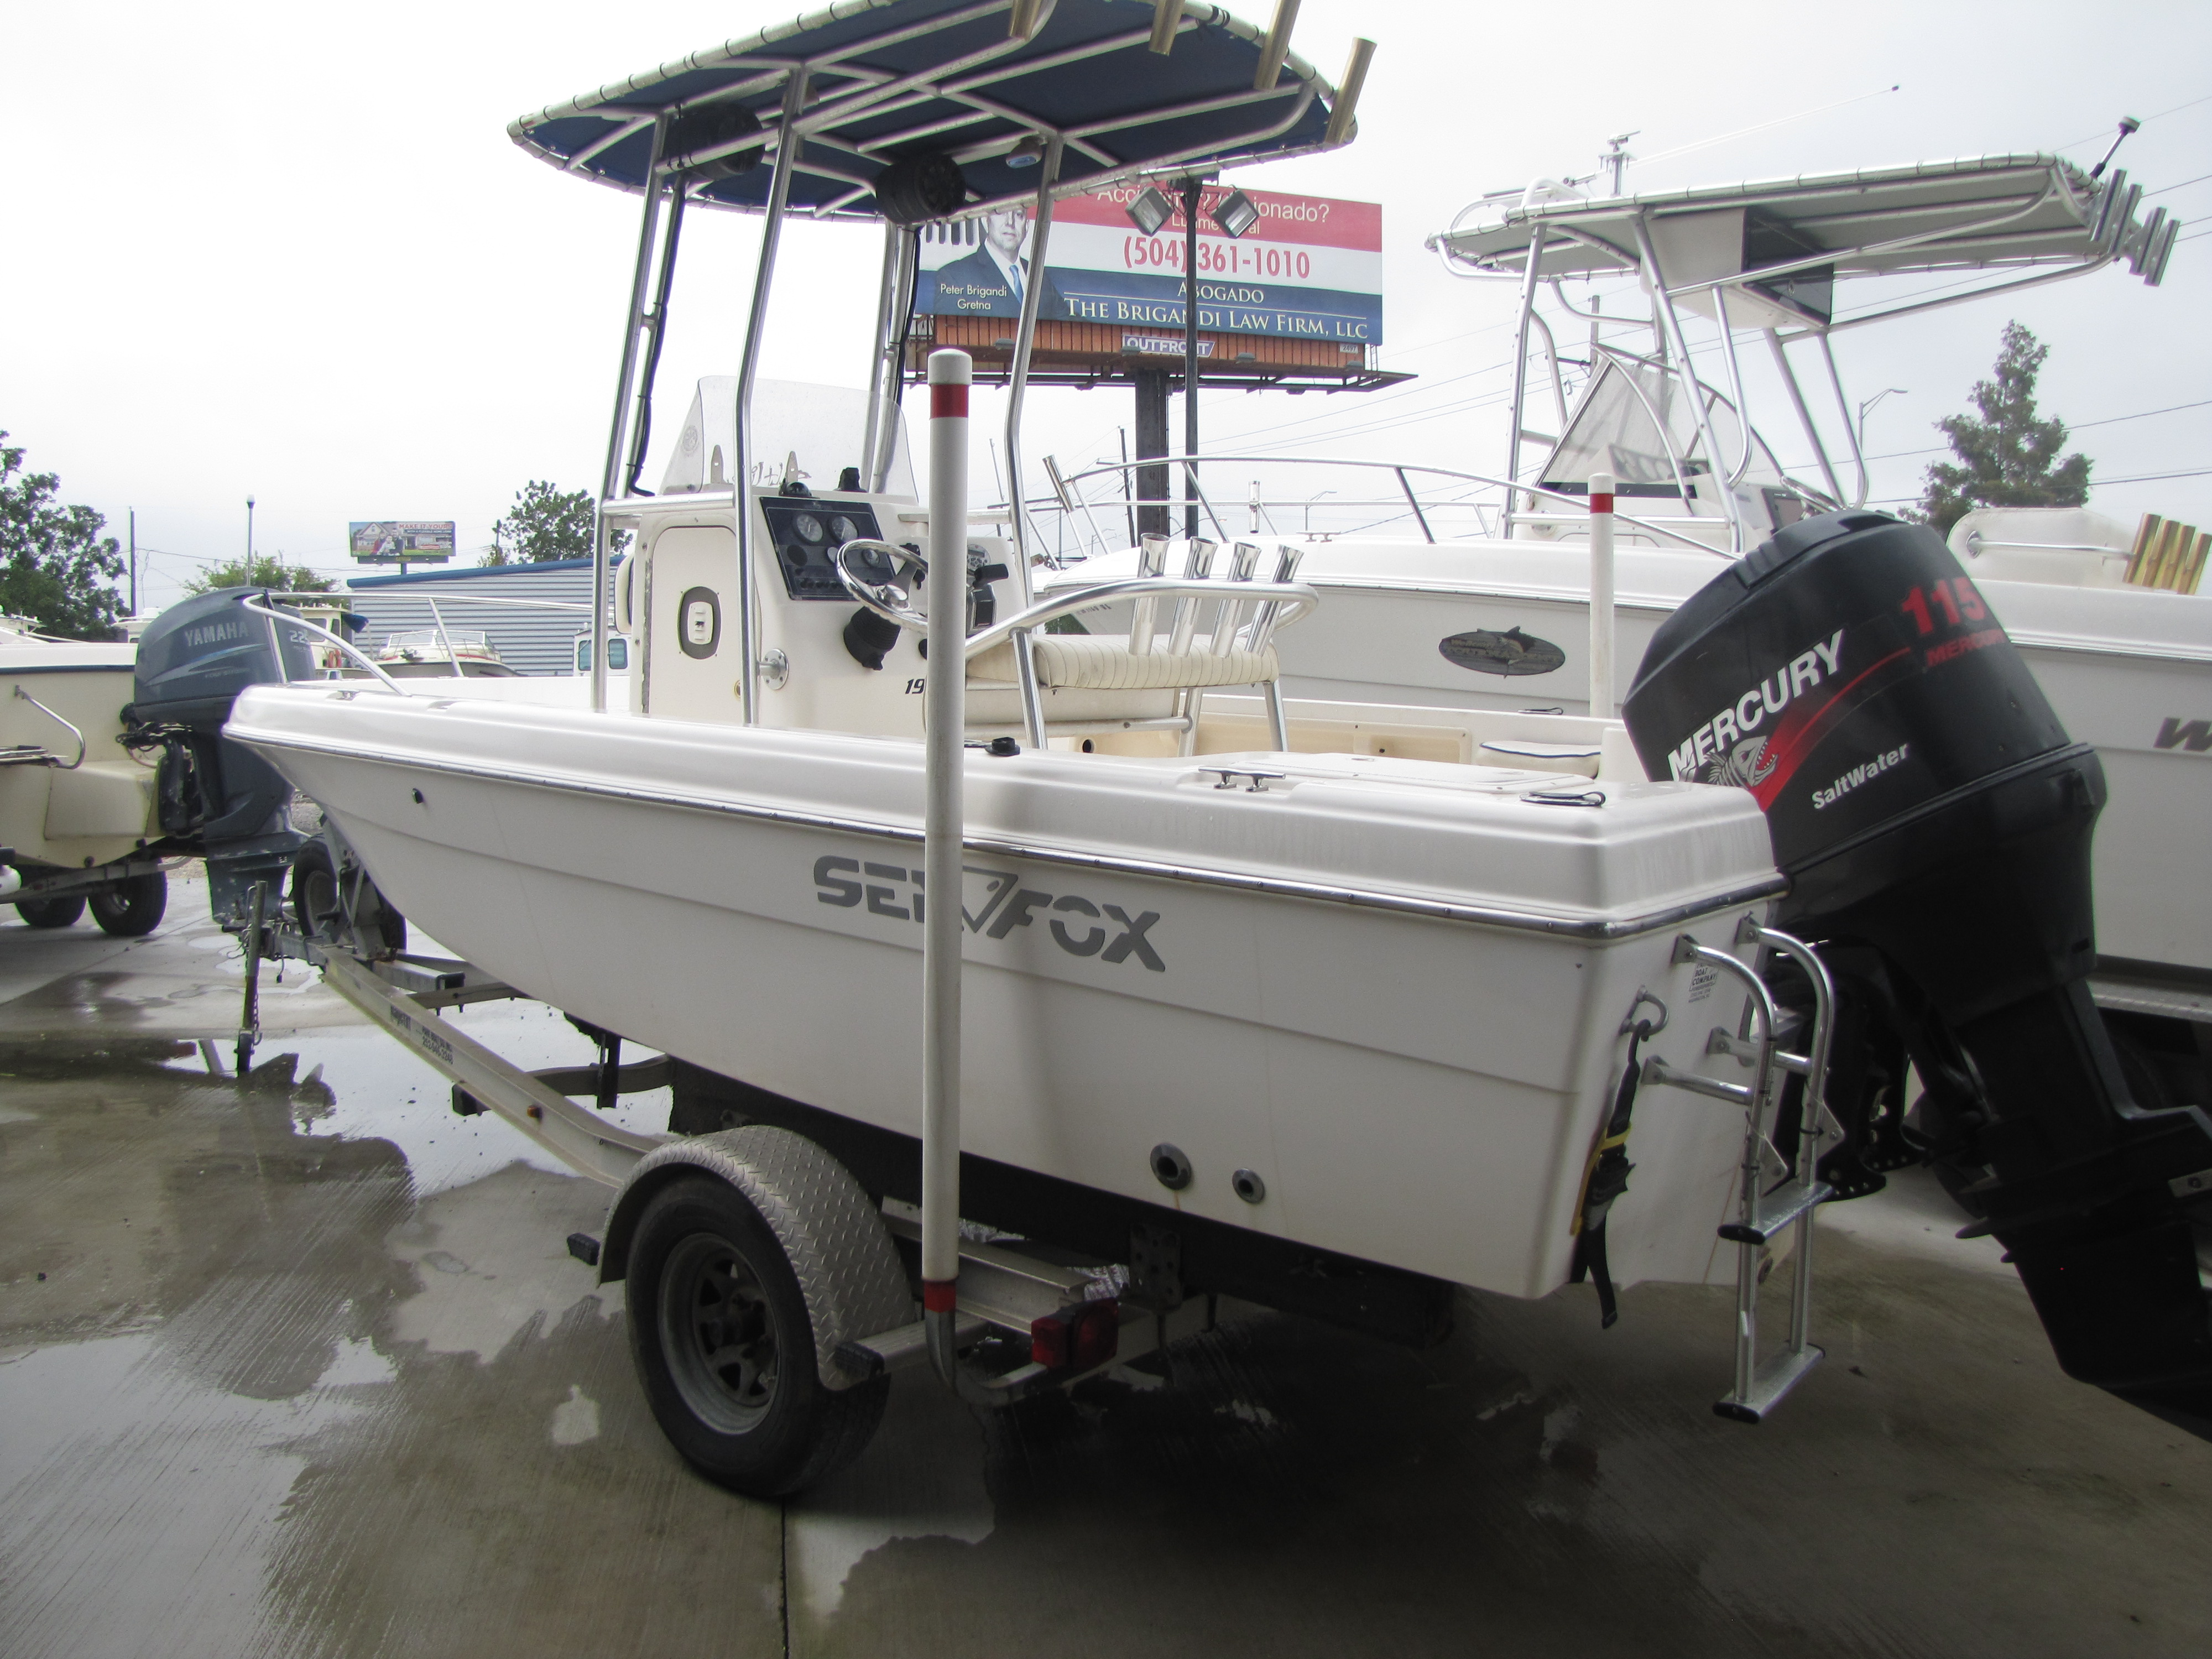 2003 Sea Fox boat for sale, model of the boat is 197 & Image # 6 of 19